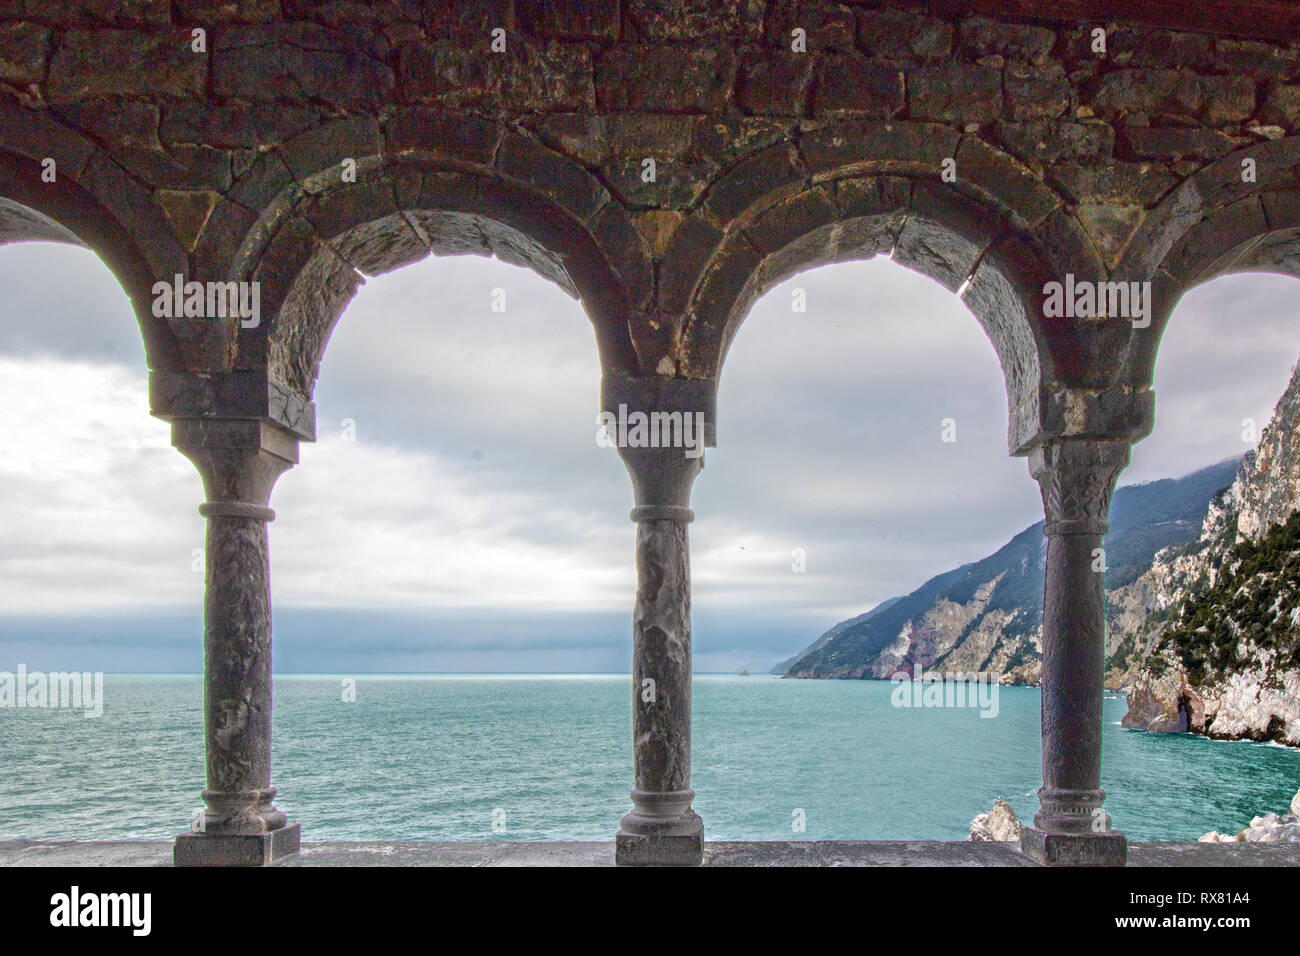 Landscape of gulf of poets at Porto Venere framed by gothic columns of Saint peter's porch in Liguria, Italy - Stock Image